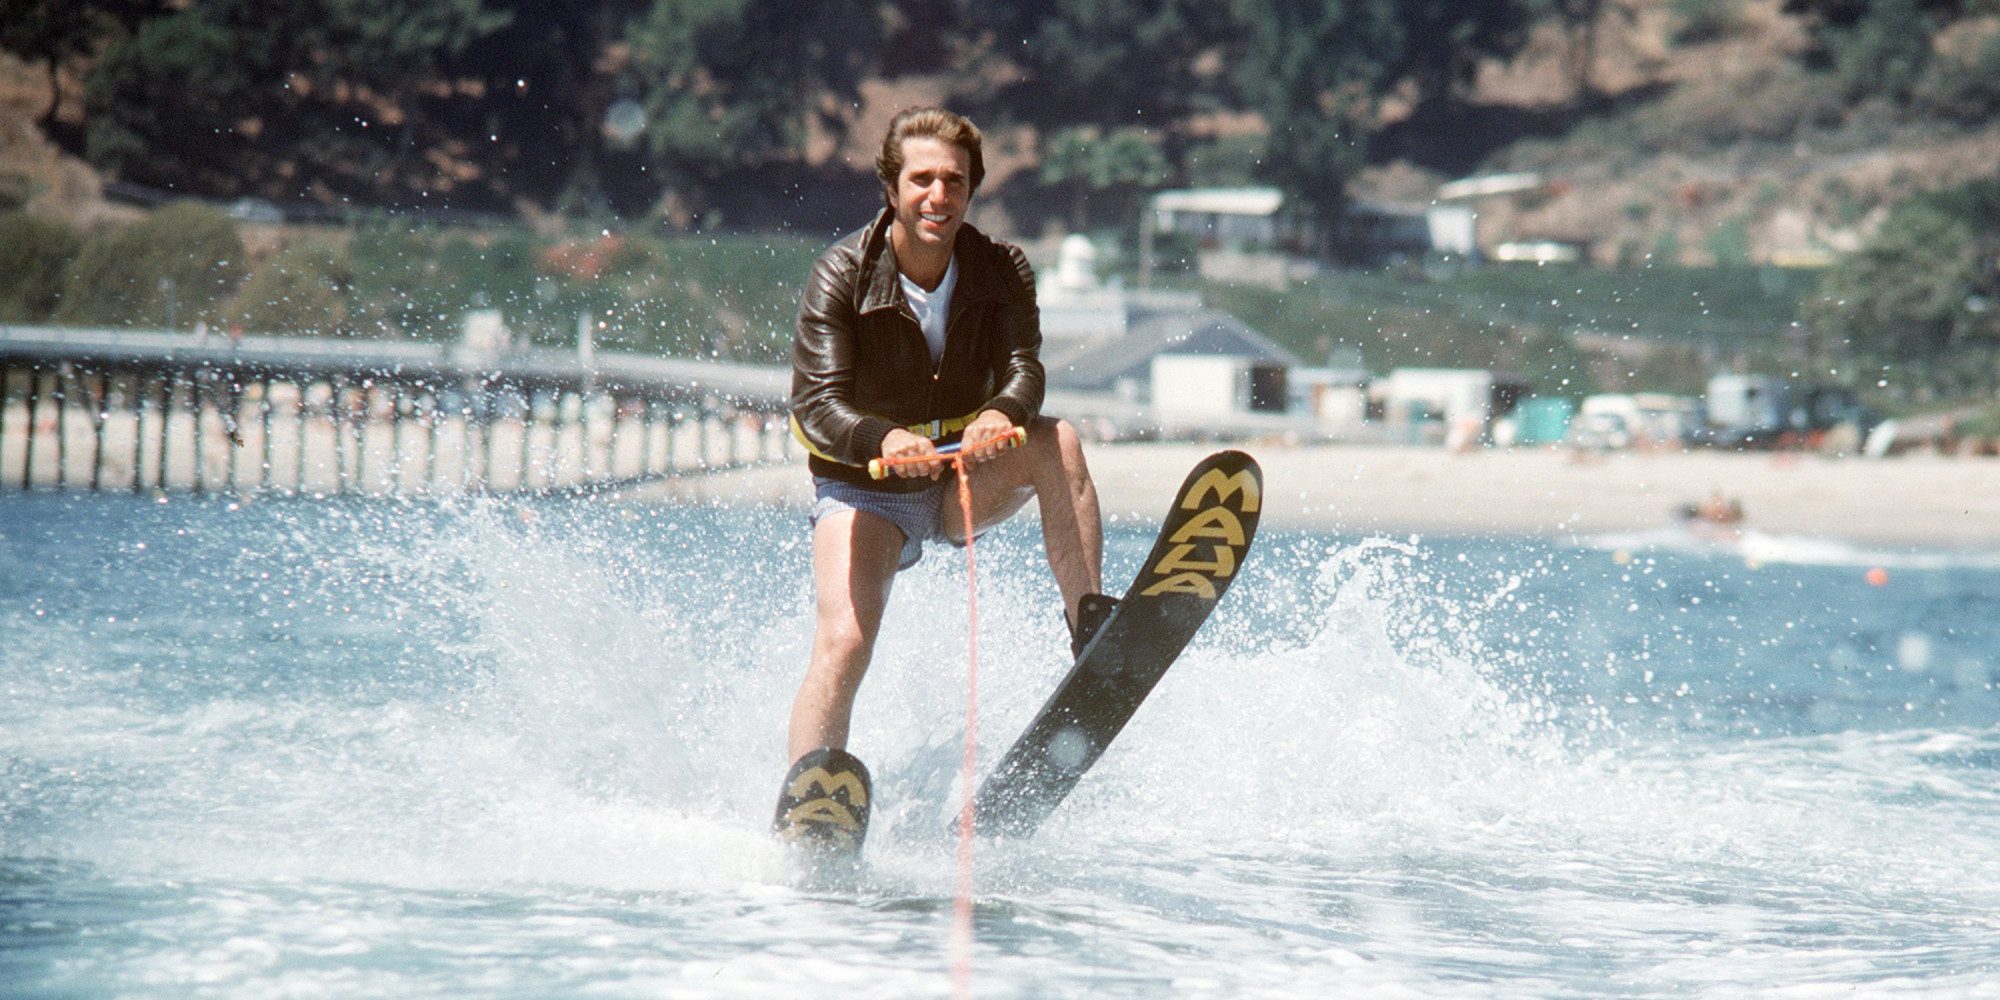 Fonzie jumps the shark on Happy Days